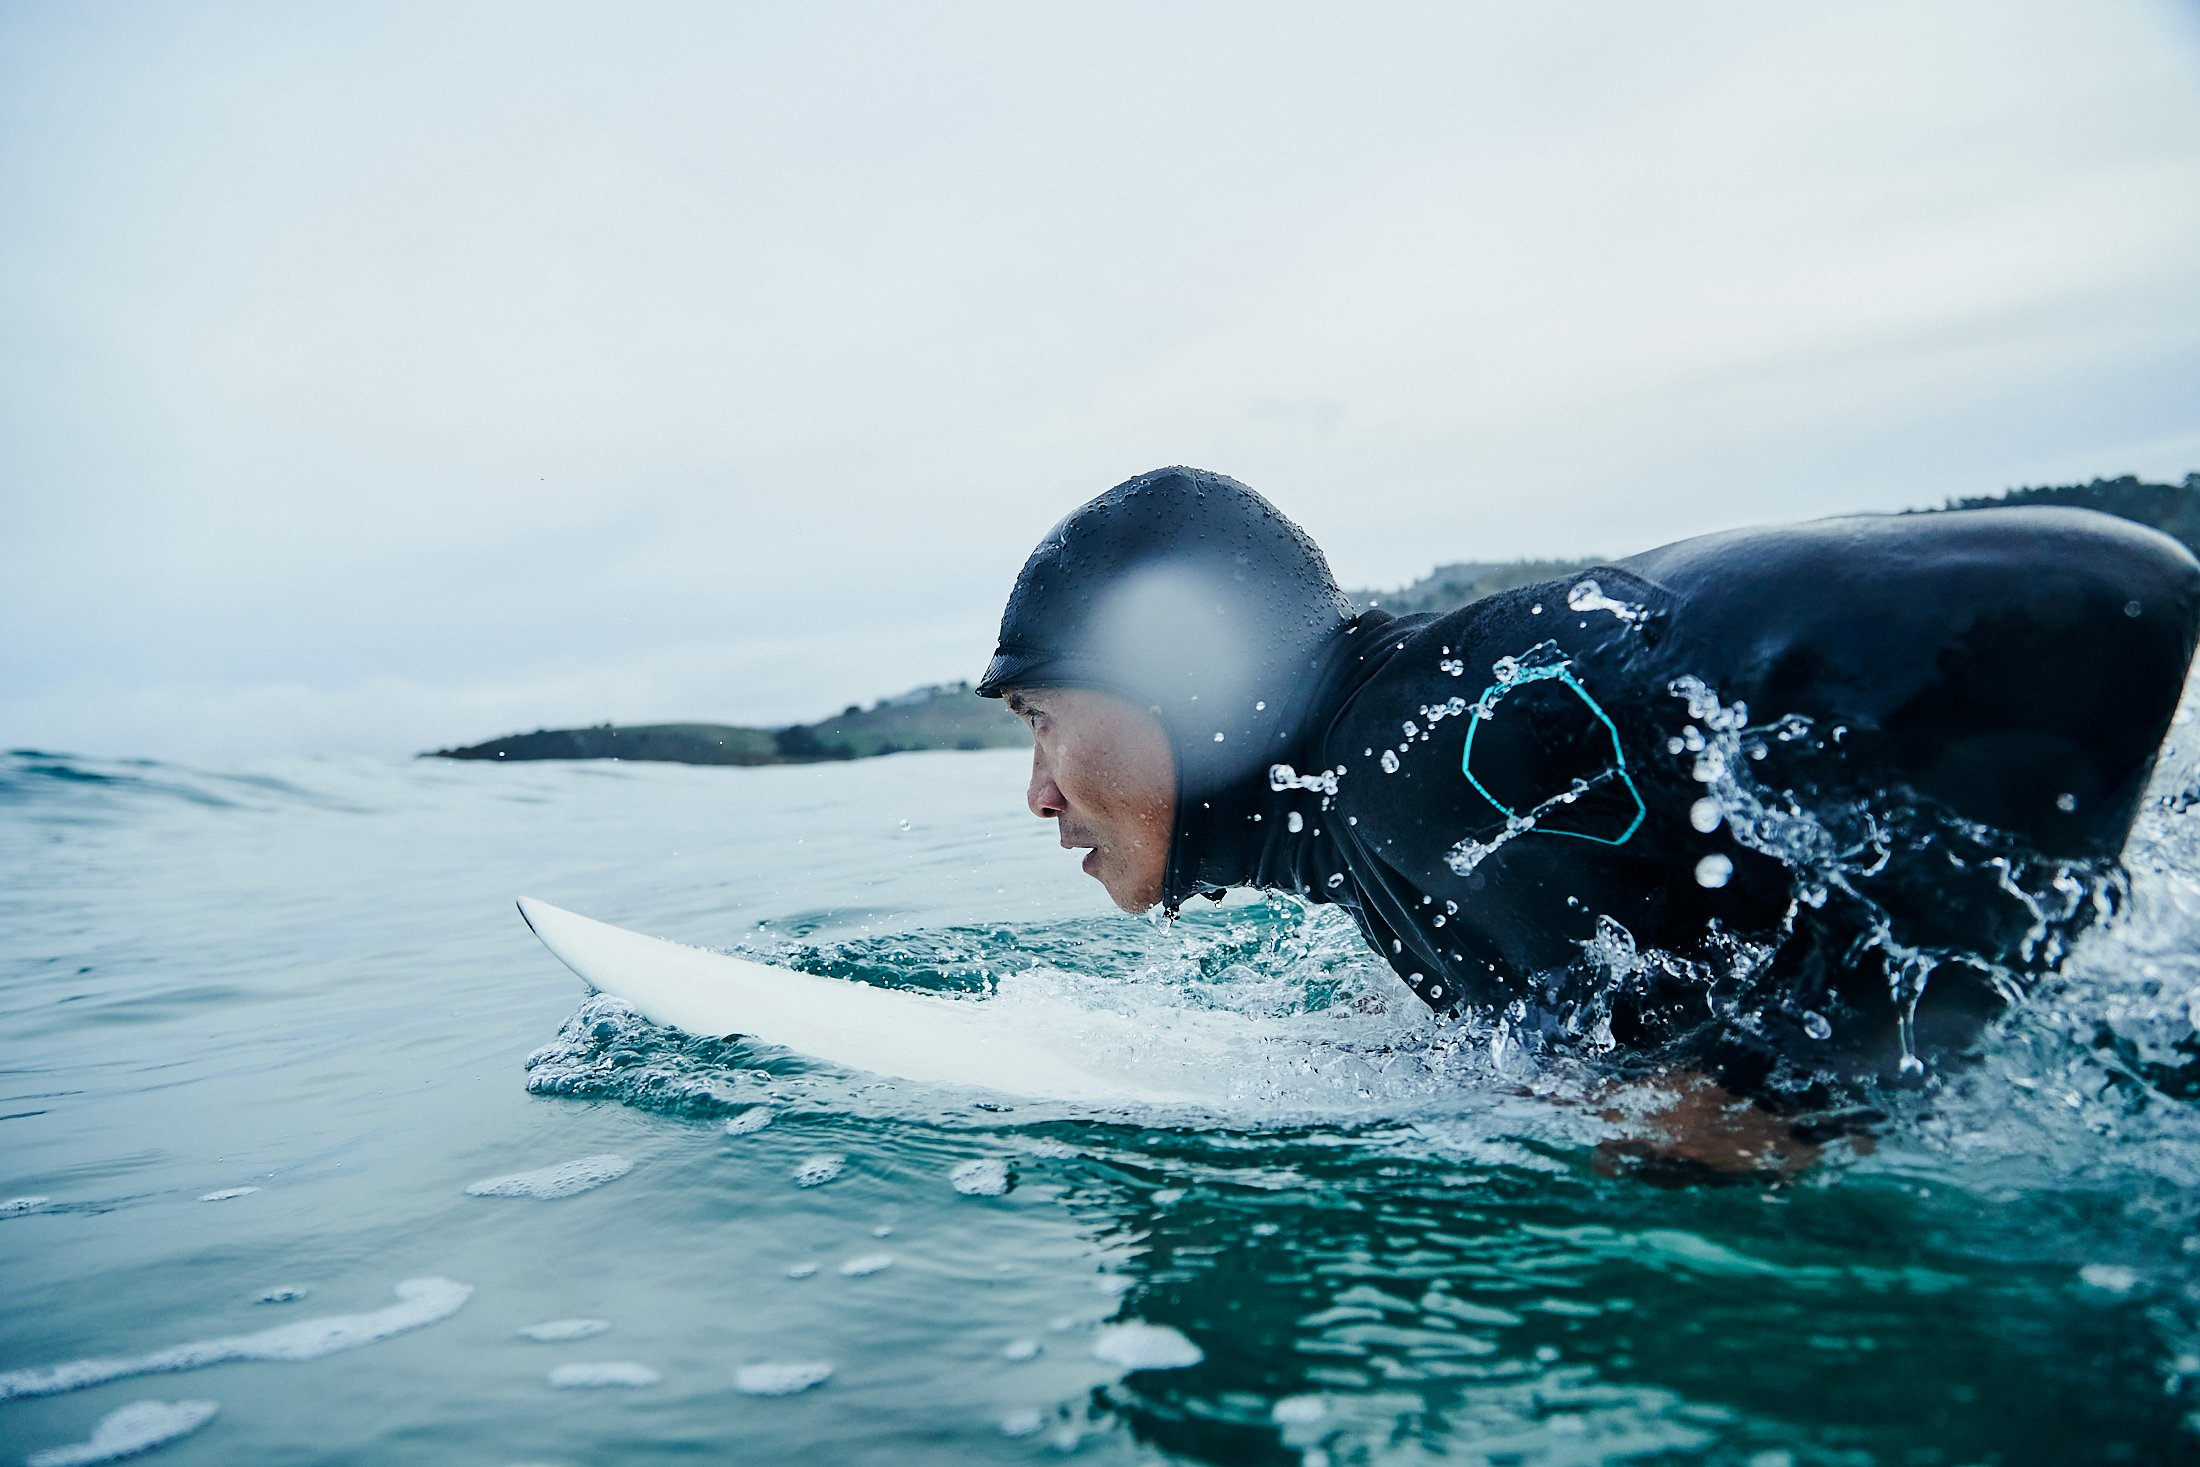 Jamel Ramiro waits for a wave on his surfboard. He is lying on his stomach, watching the horizon. He's wearing a black, full body wetsuit with a head cover. His surfboard is white.